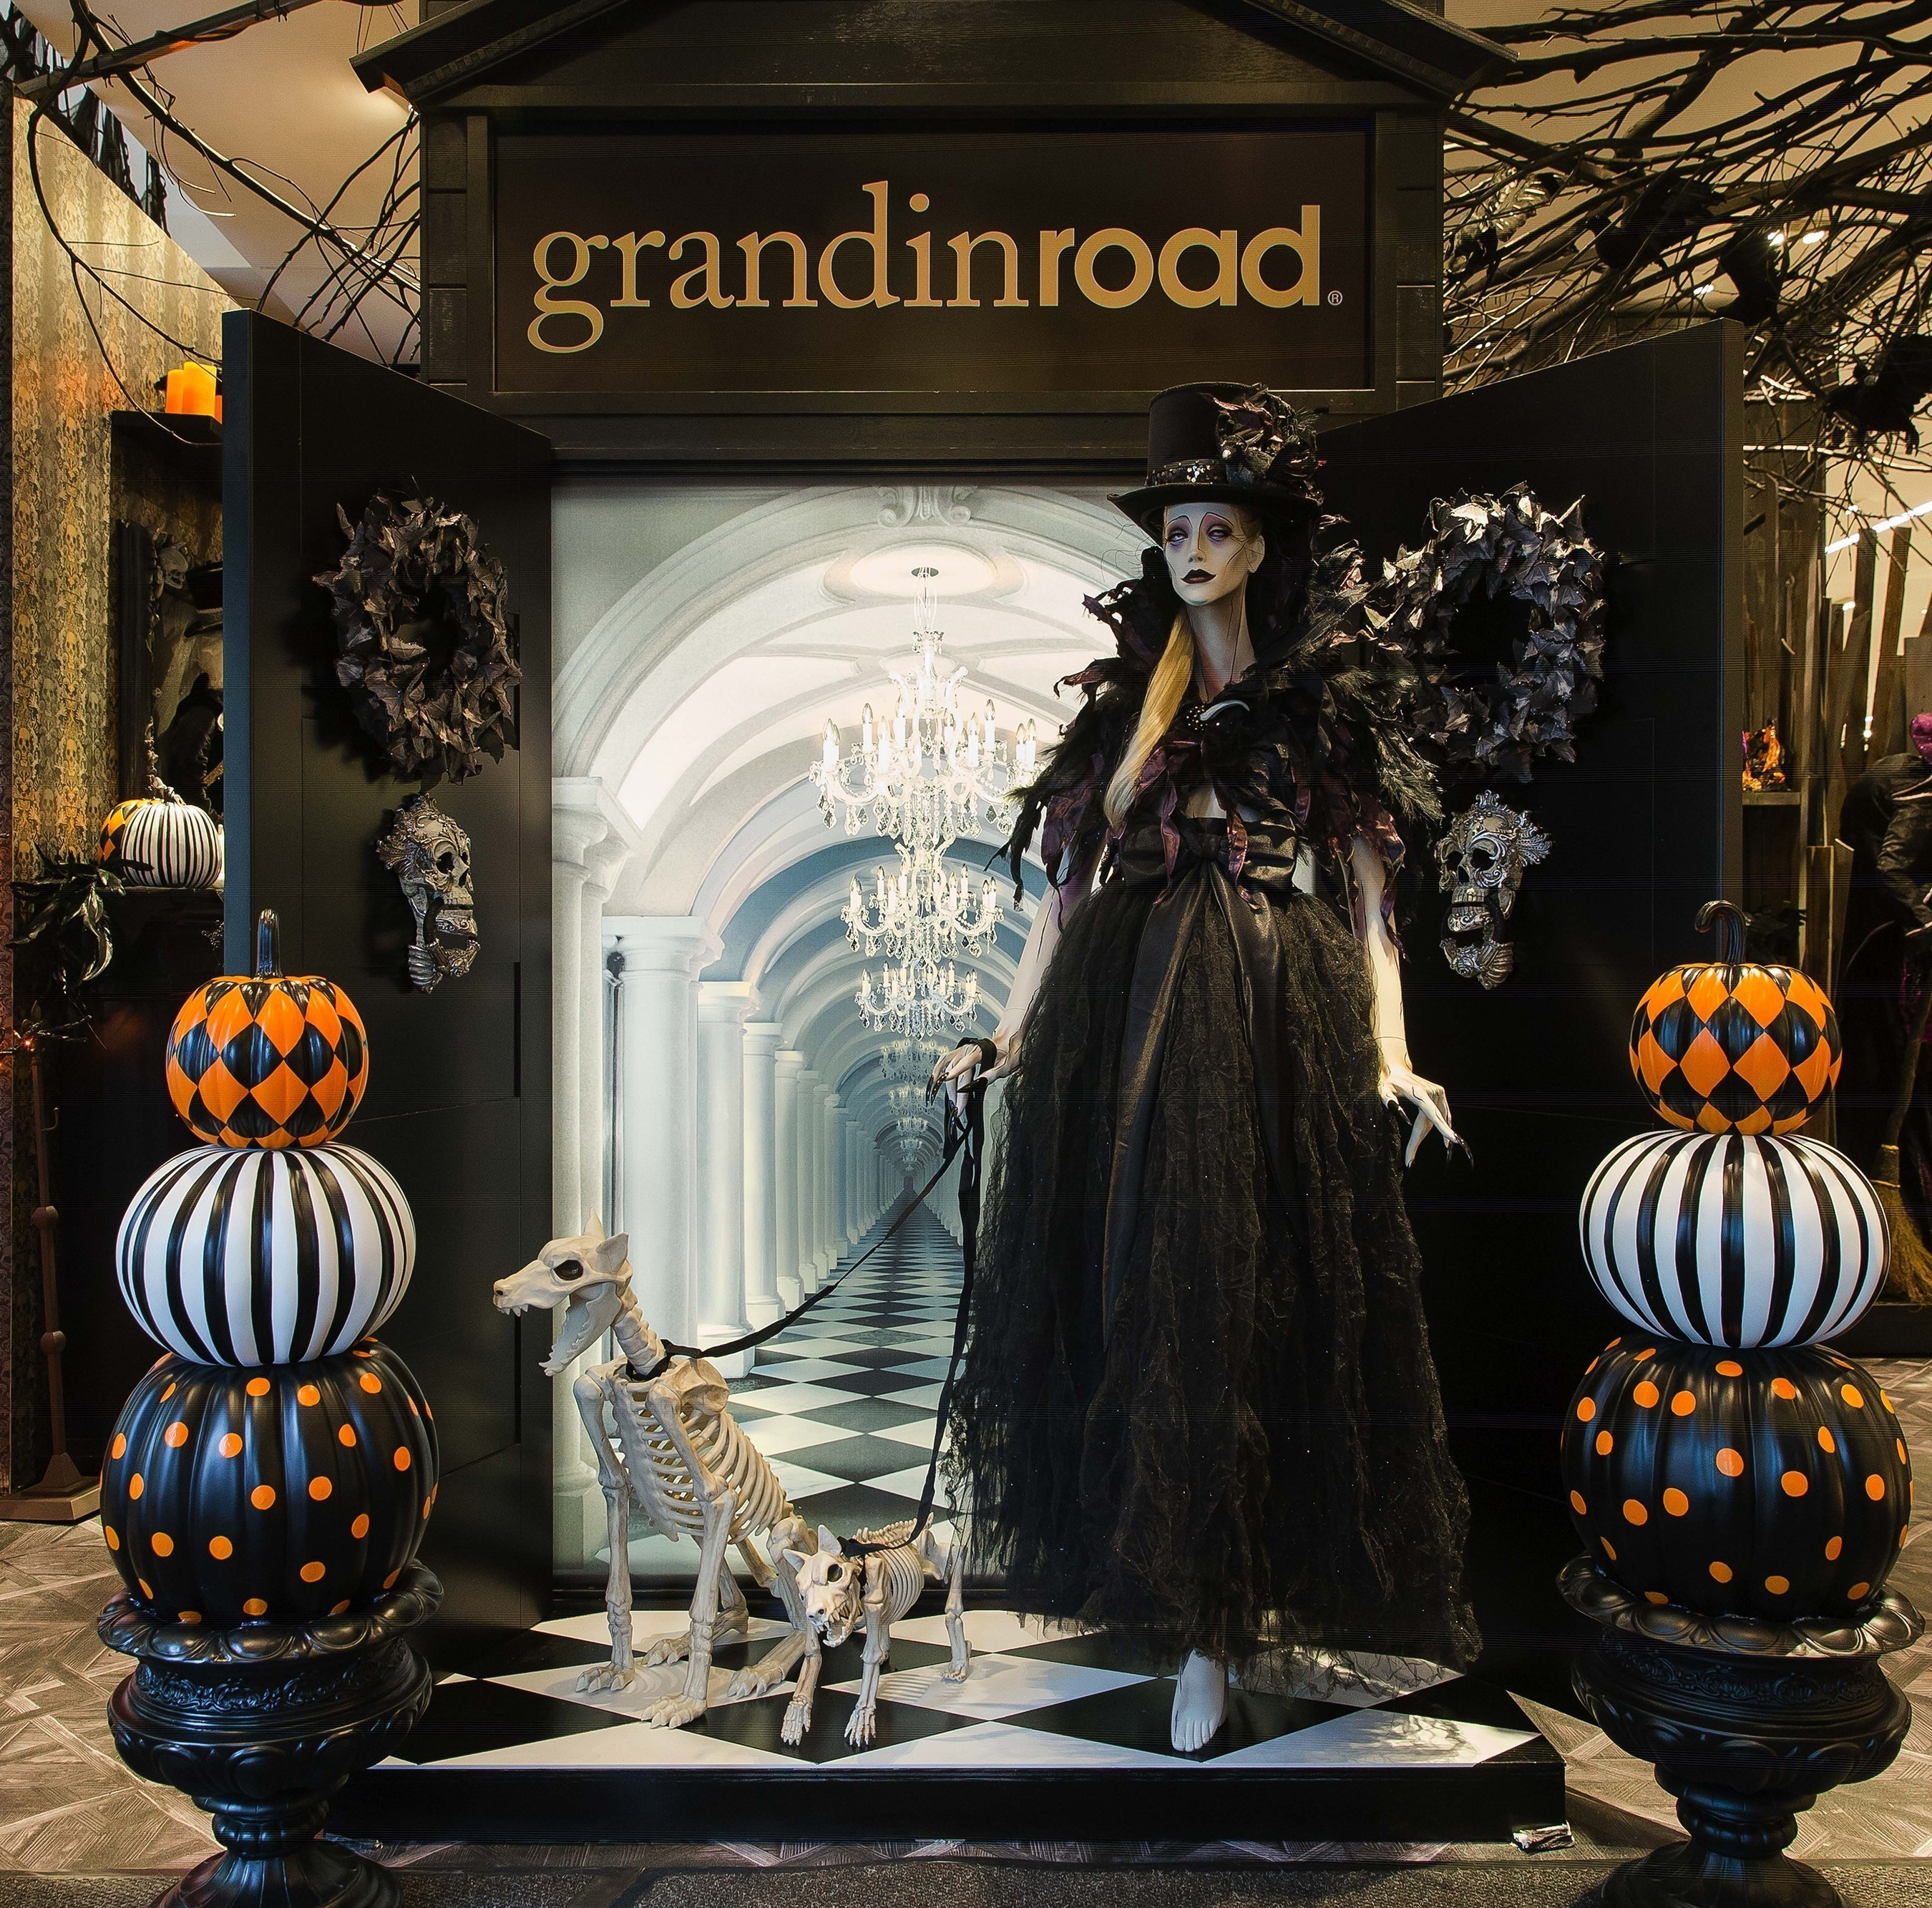 grandin road halloween concept shop entrance